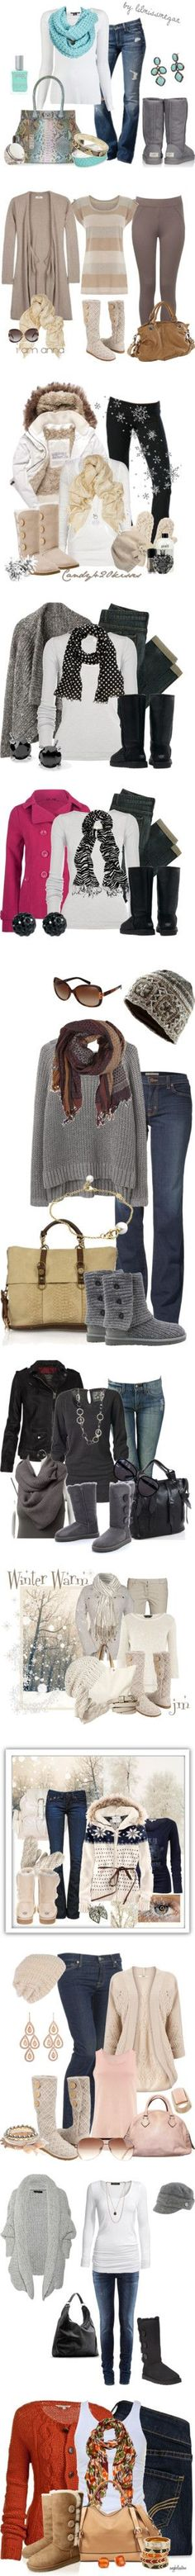 These are great winter outfits featuring many different styles of UGG Boots! I love all BUT UGG boots...